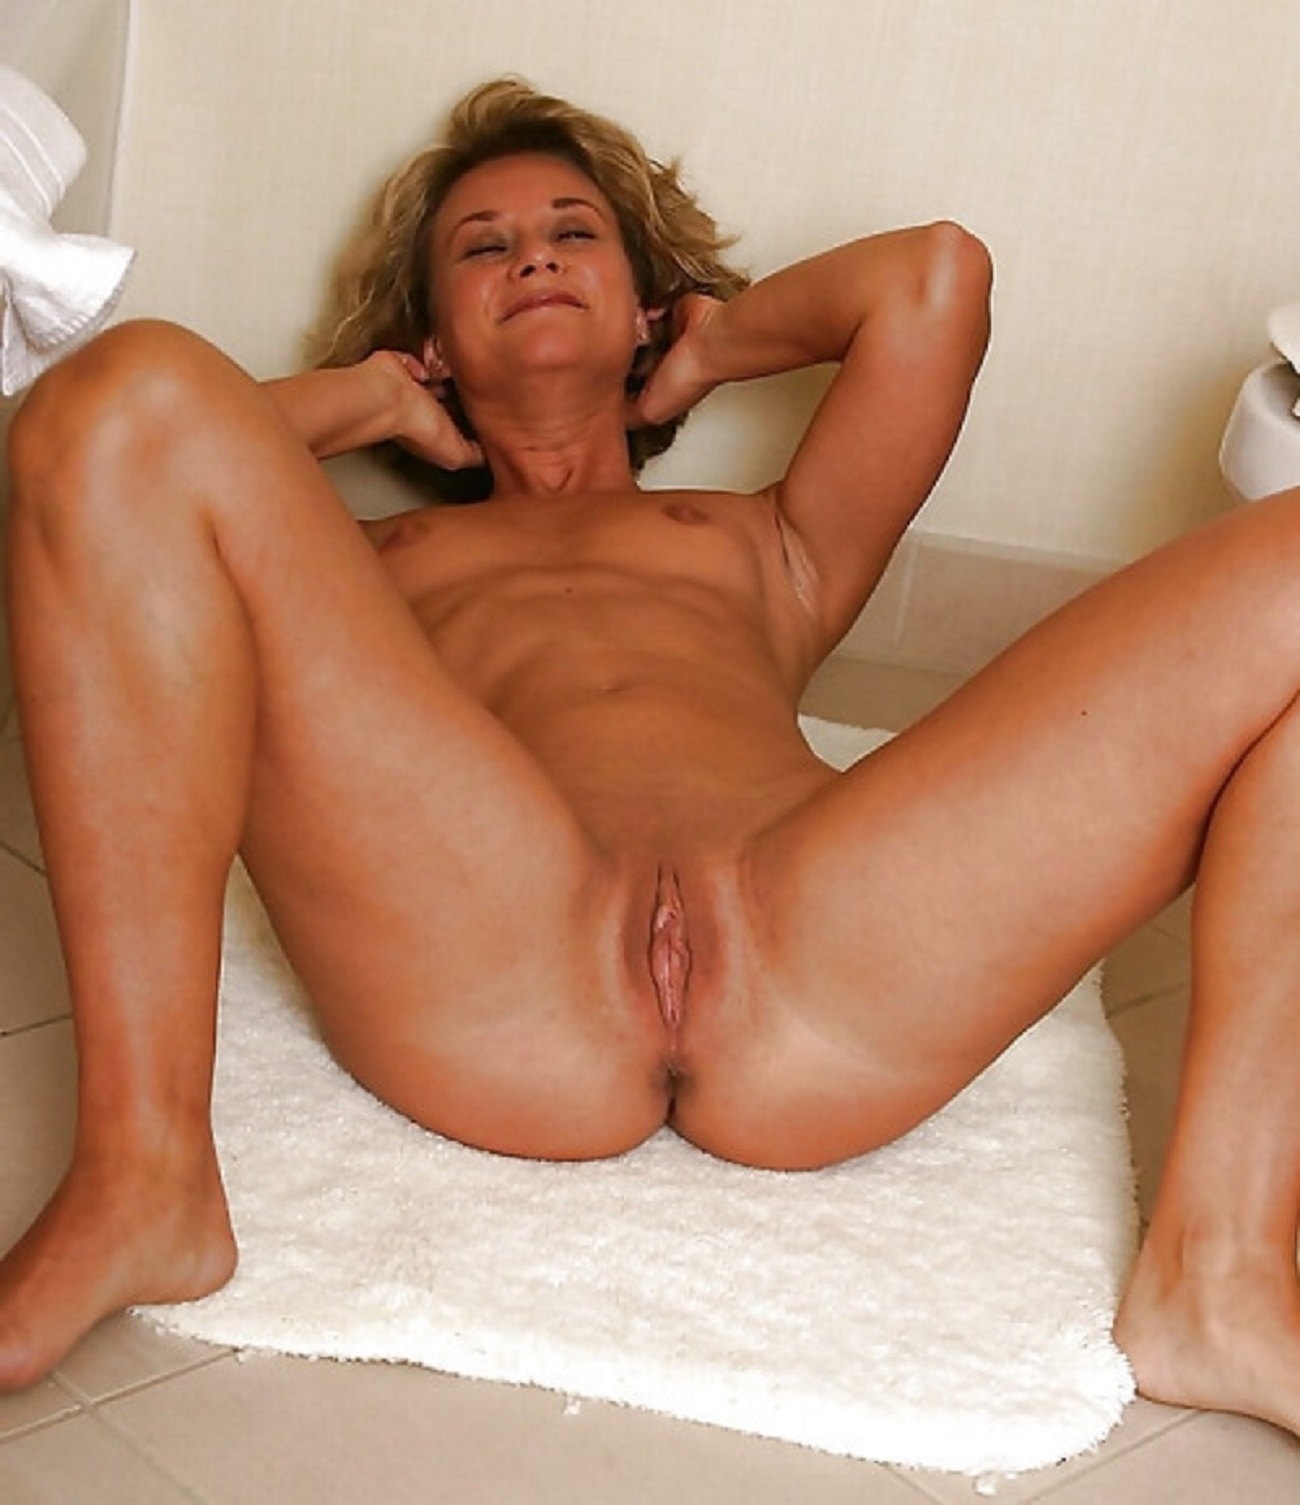 nude-middle-aged-wife-pics-japanese-nude-oiled